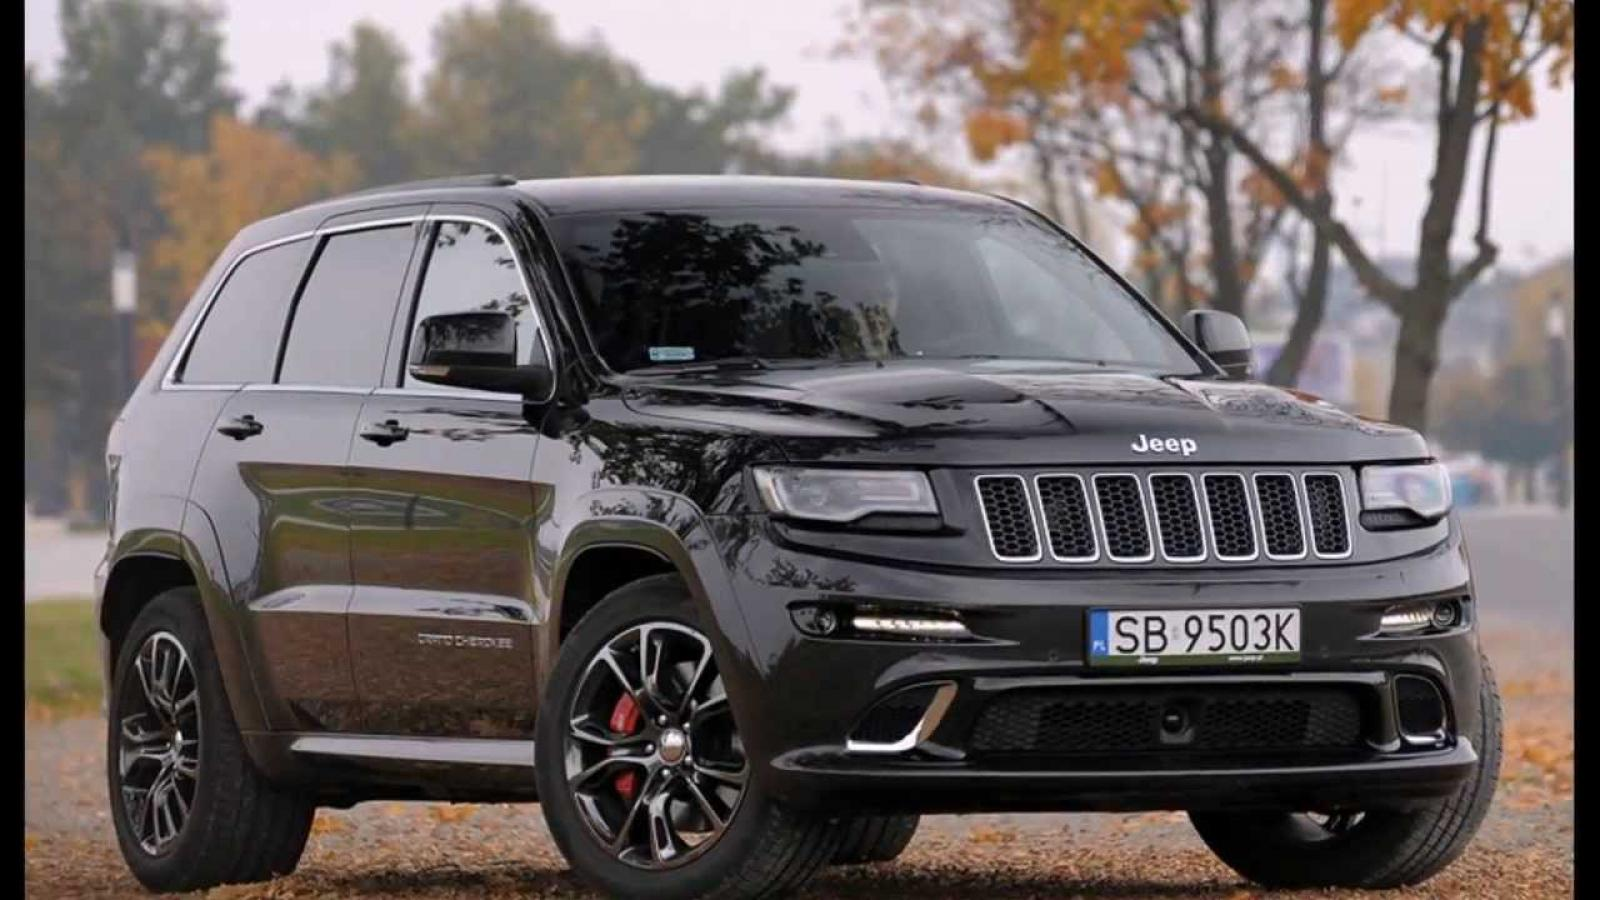 2015 jeep grand cherokee information and photos zombiedrive. Black Bedroom Furniture Sets. Home Design Ideas